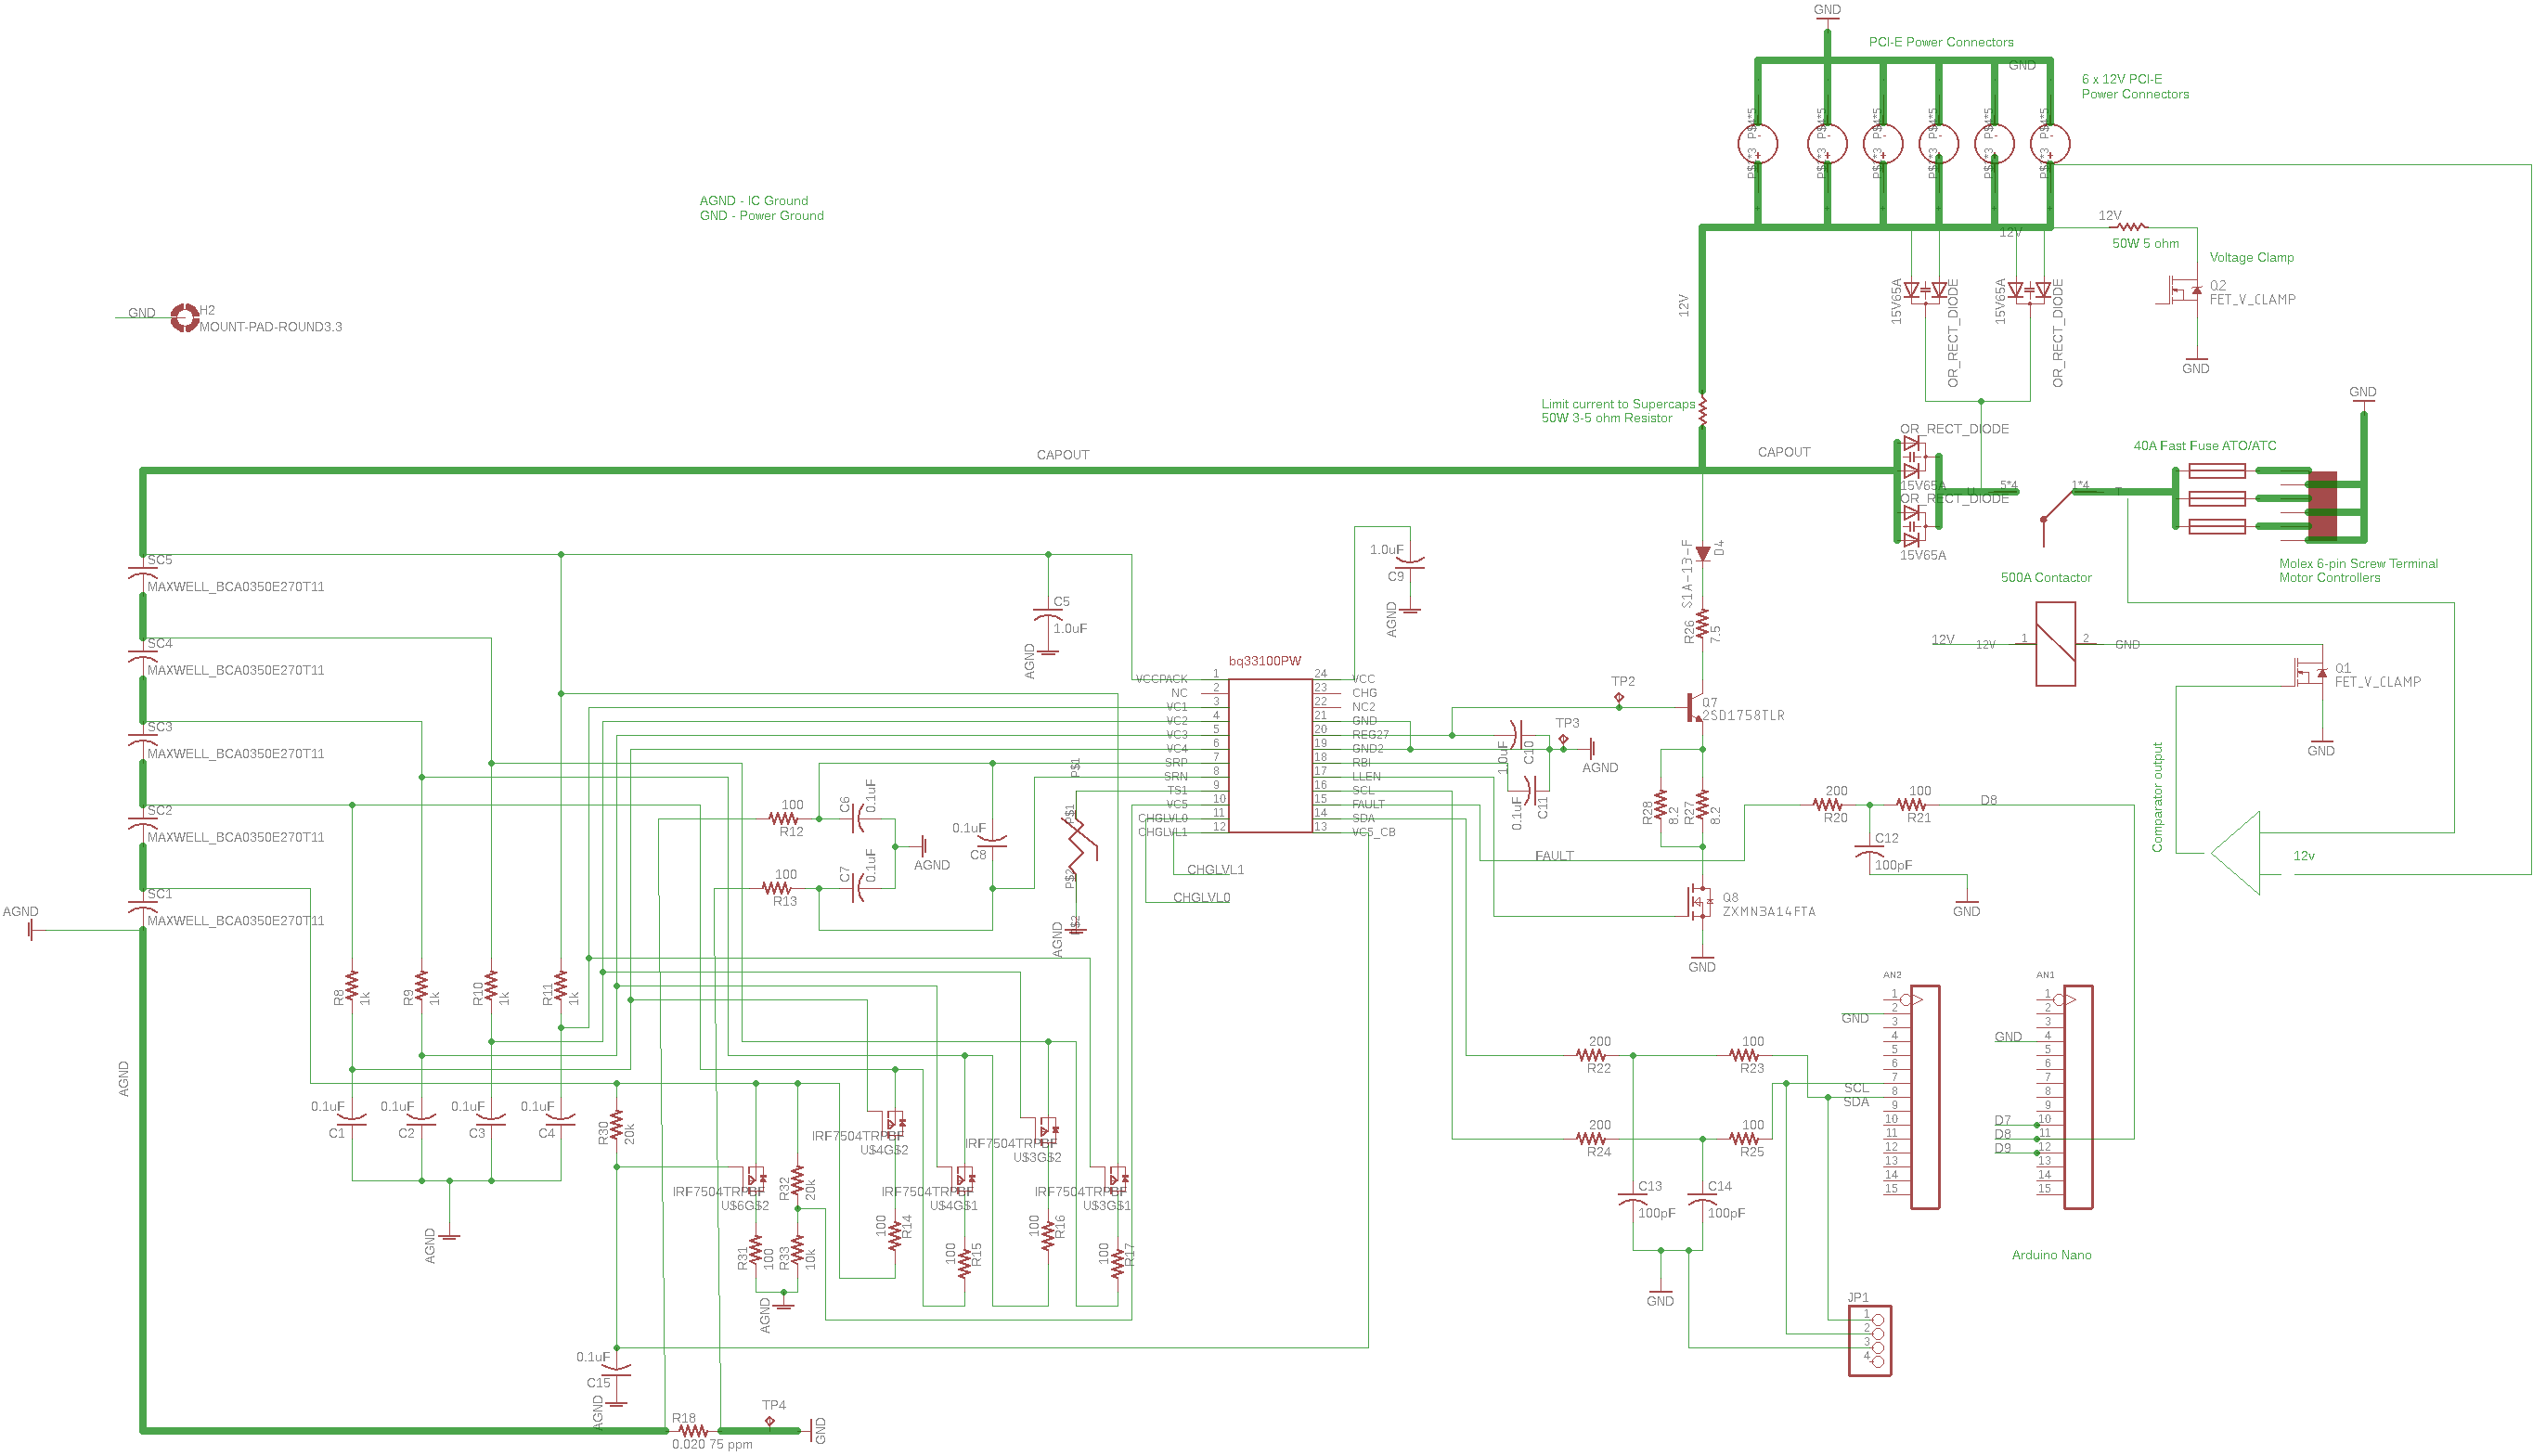 Resolved Bq33100 Chglvl0 And Chglvl1 Floating Power Management Voltage Regulator Zener Diode Circuit Electrical Engineering Stack Maybe Diodes Or Regulators Per Cap To Hard Limit The Each